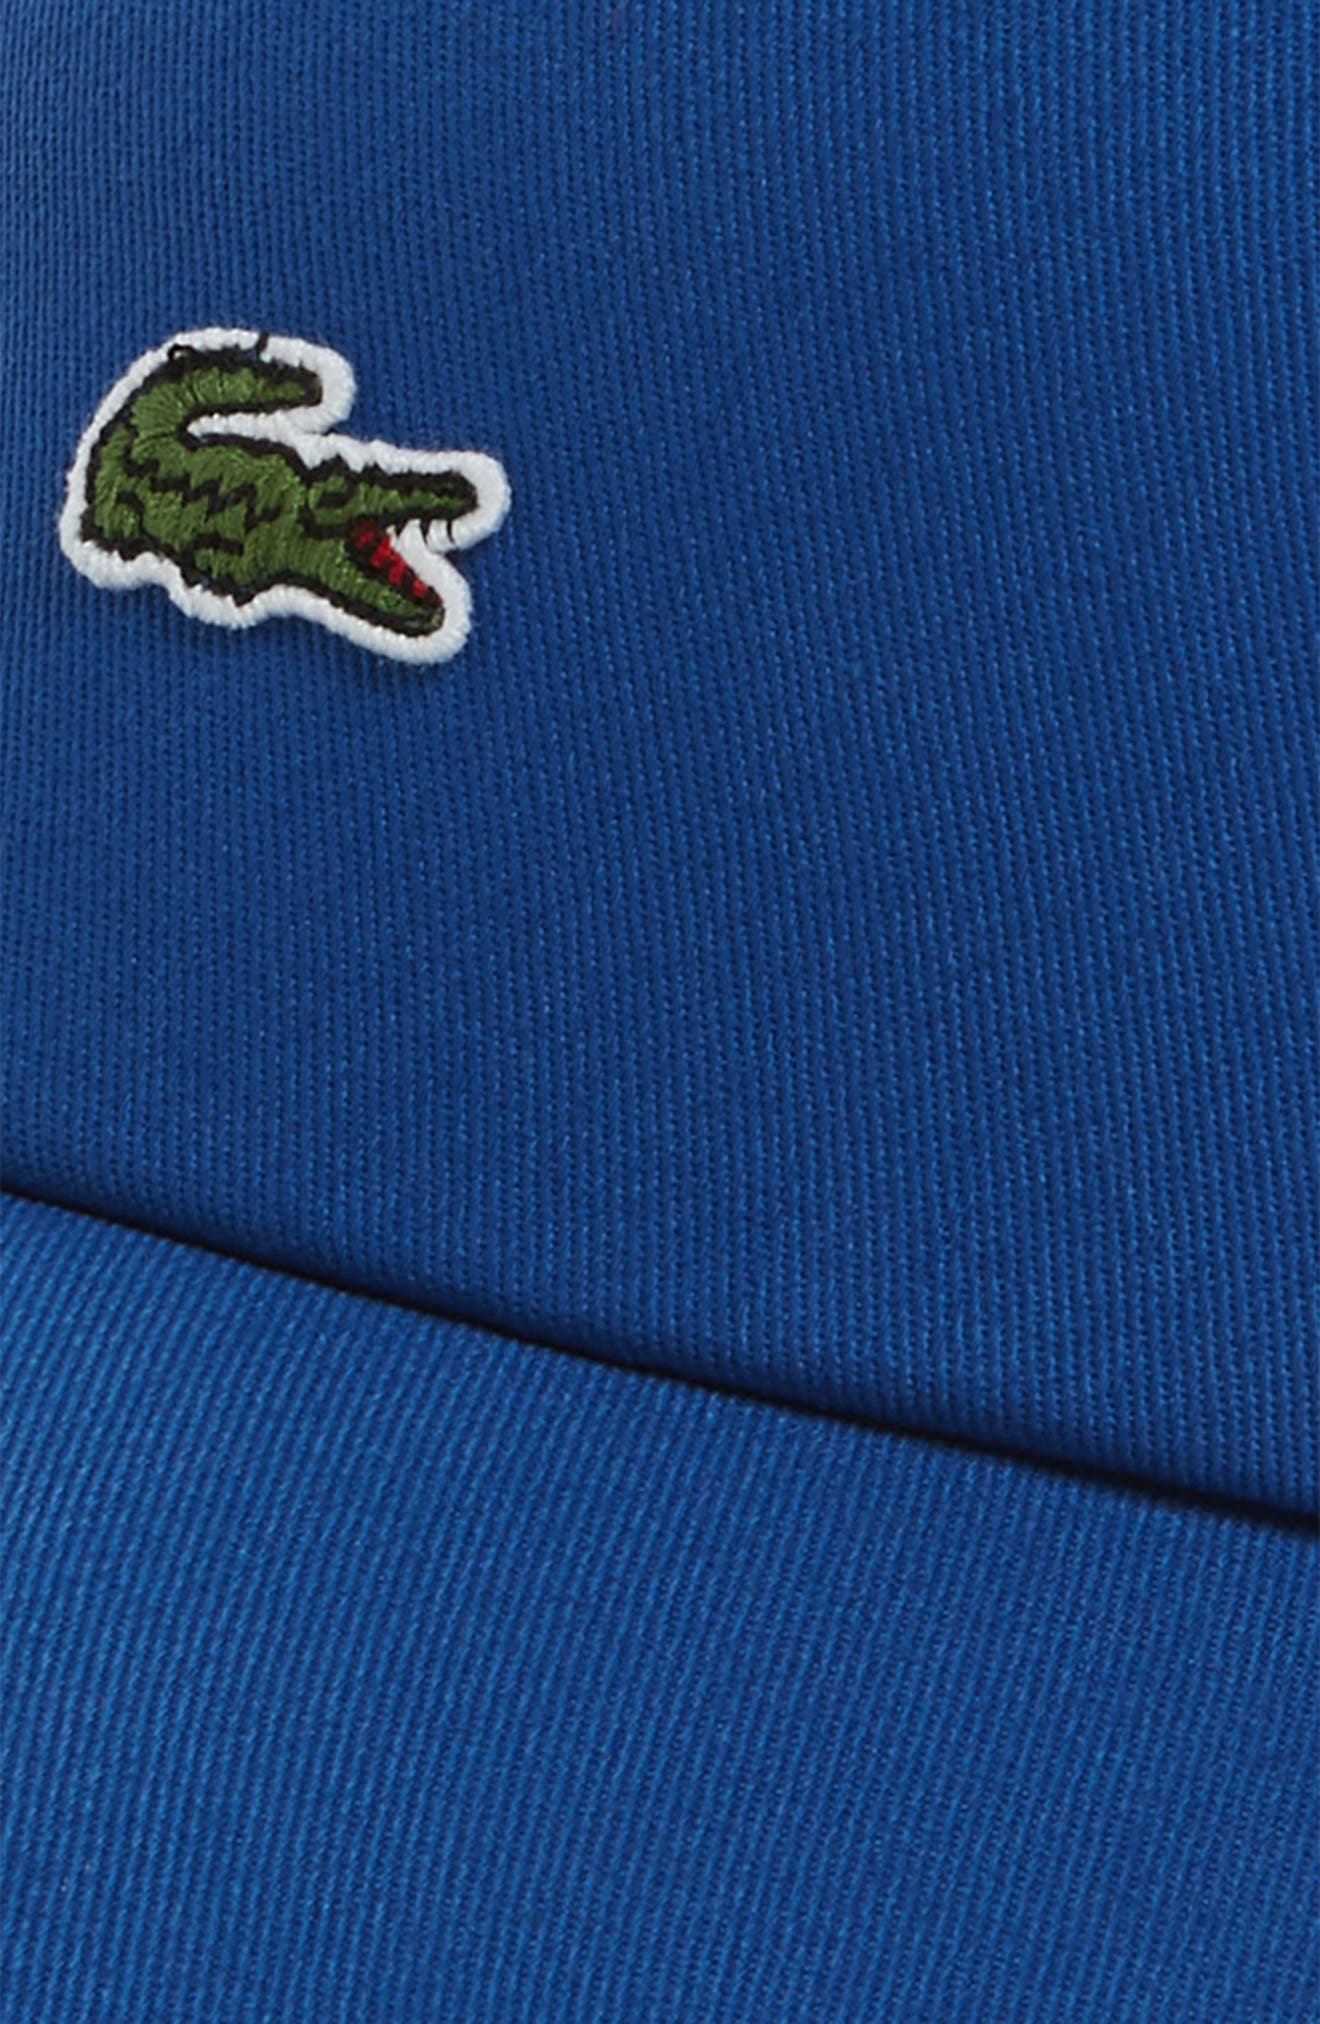 Small Croc Baseball Cap,                             Alternate thumbnail 3, color,                             Electric